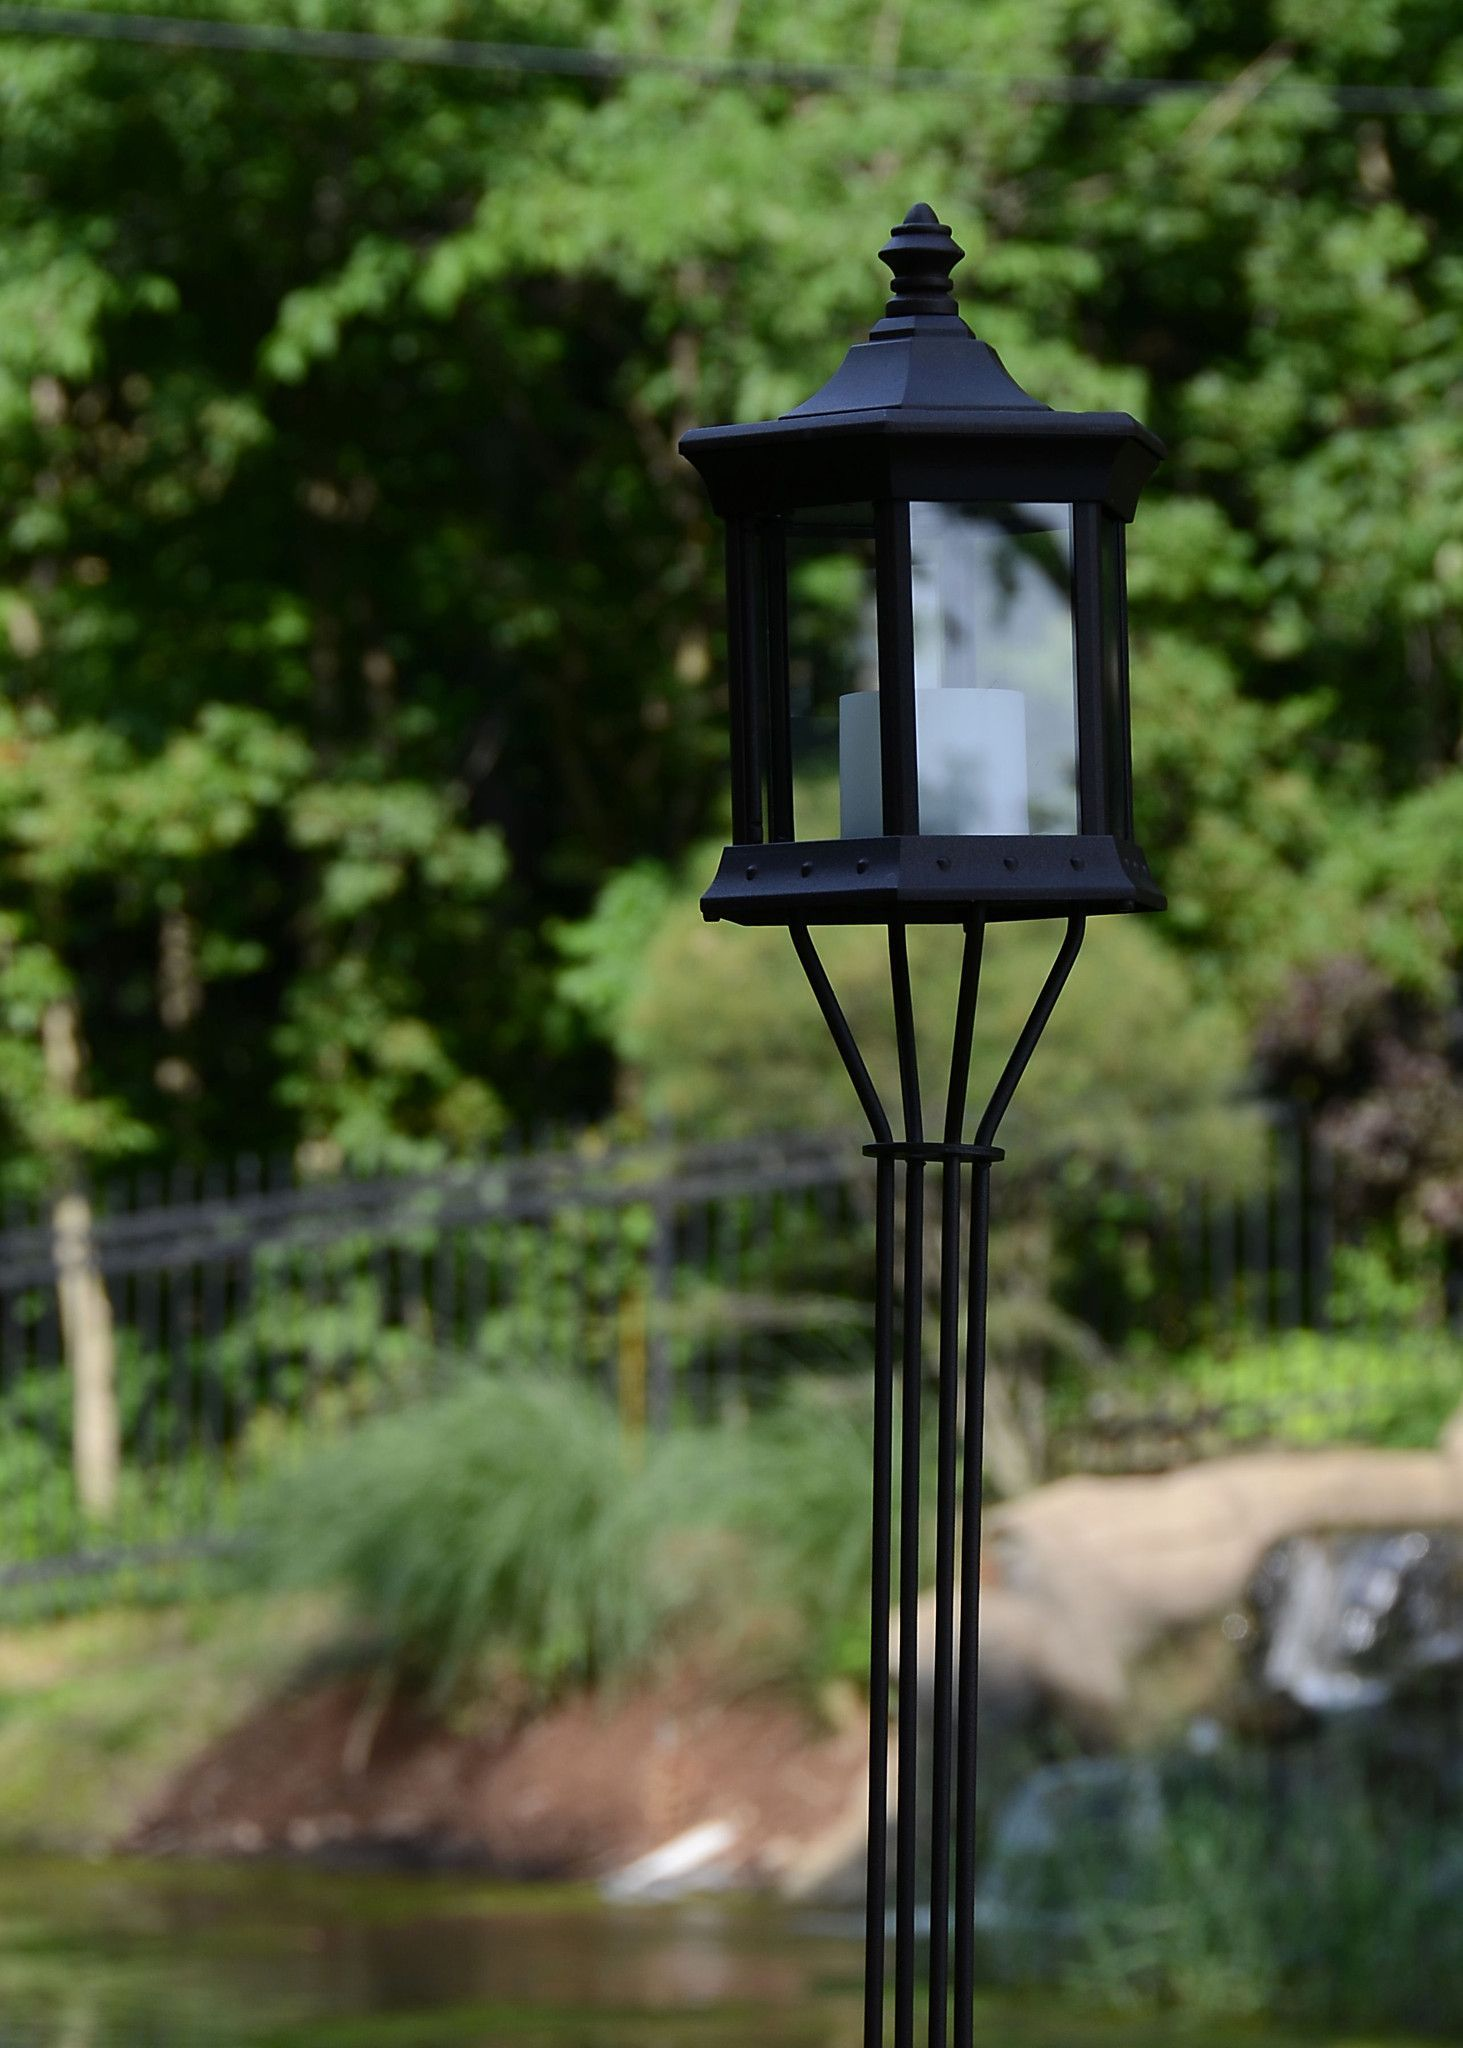 Explore Landscaping Around Patio, Deck Patio, And More! Solar Lantern Clear  Glass Tiki Torch